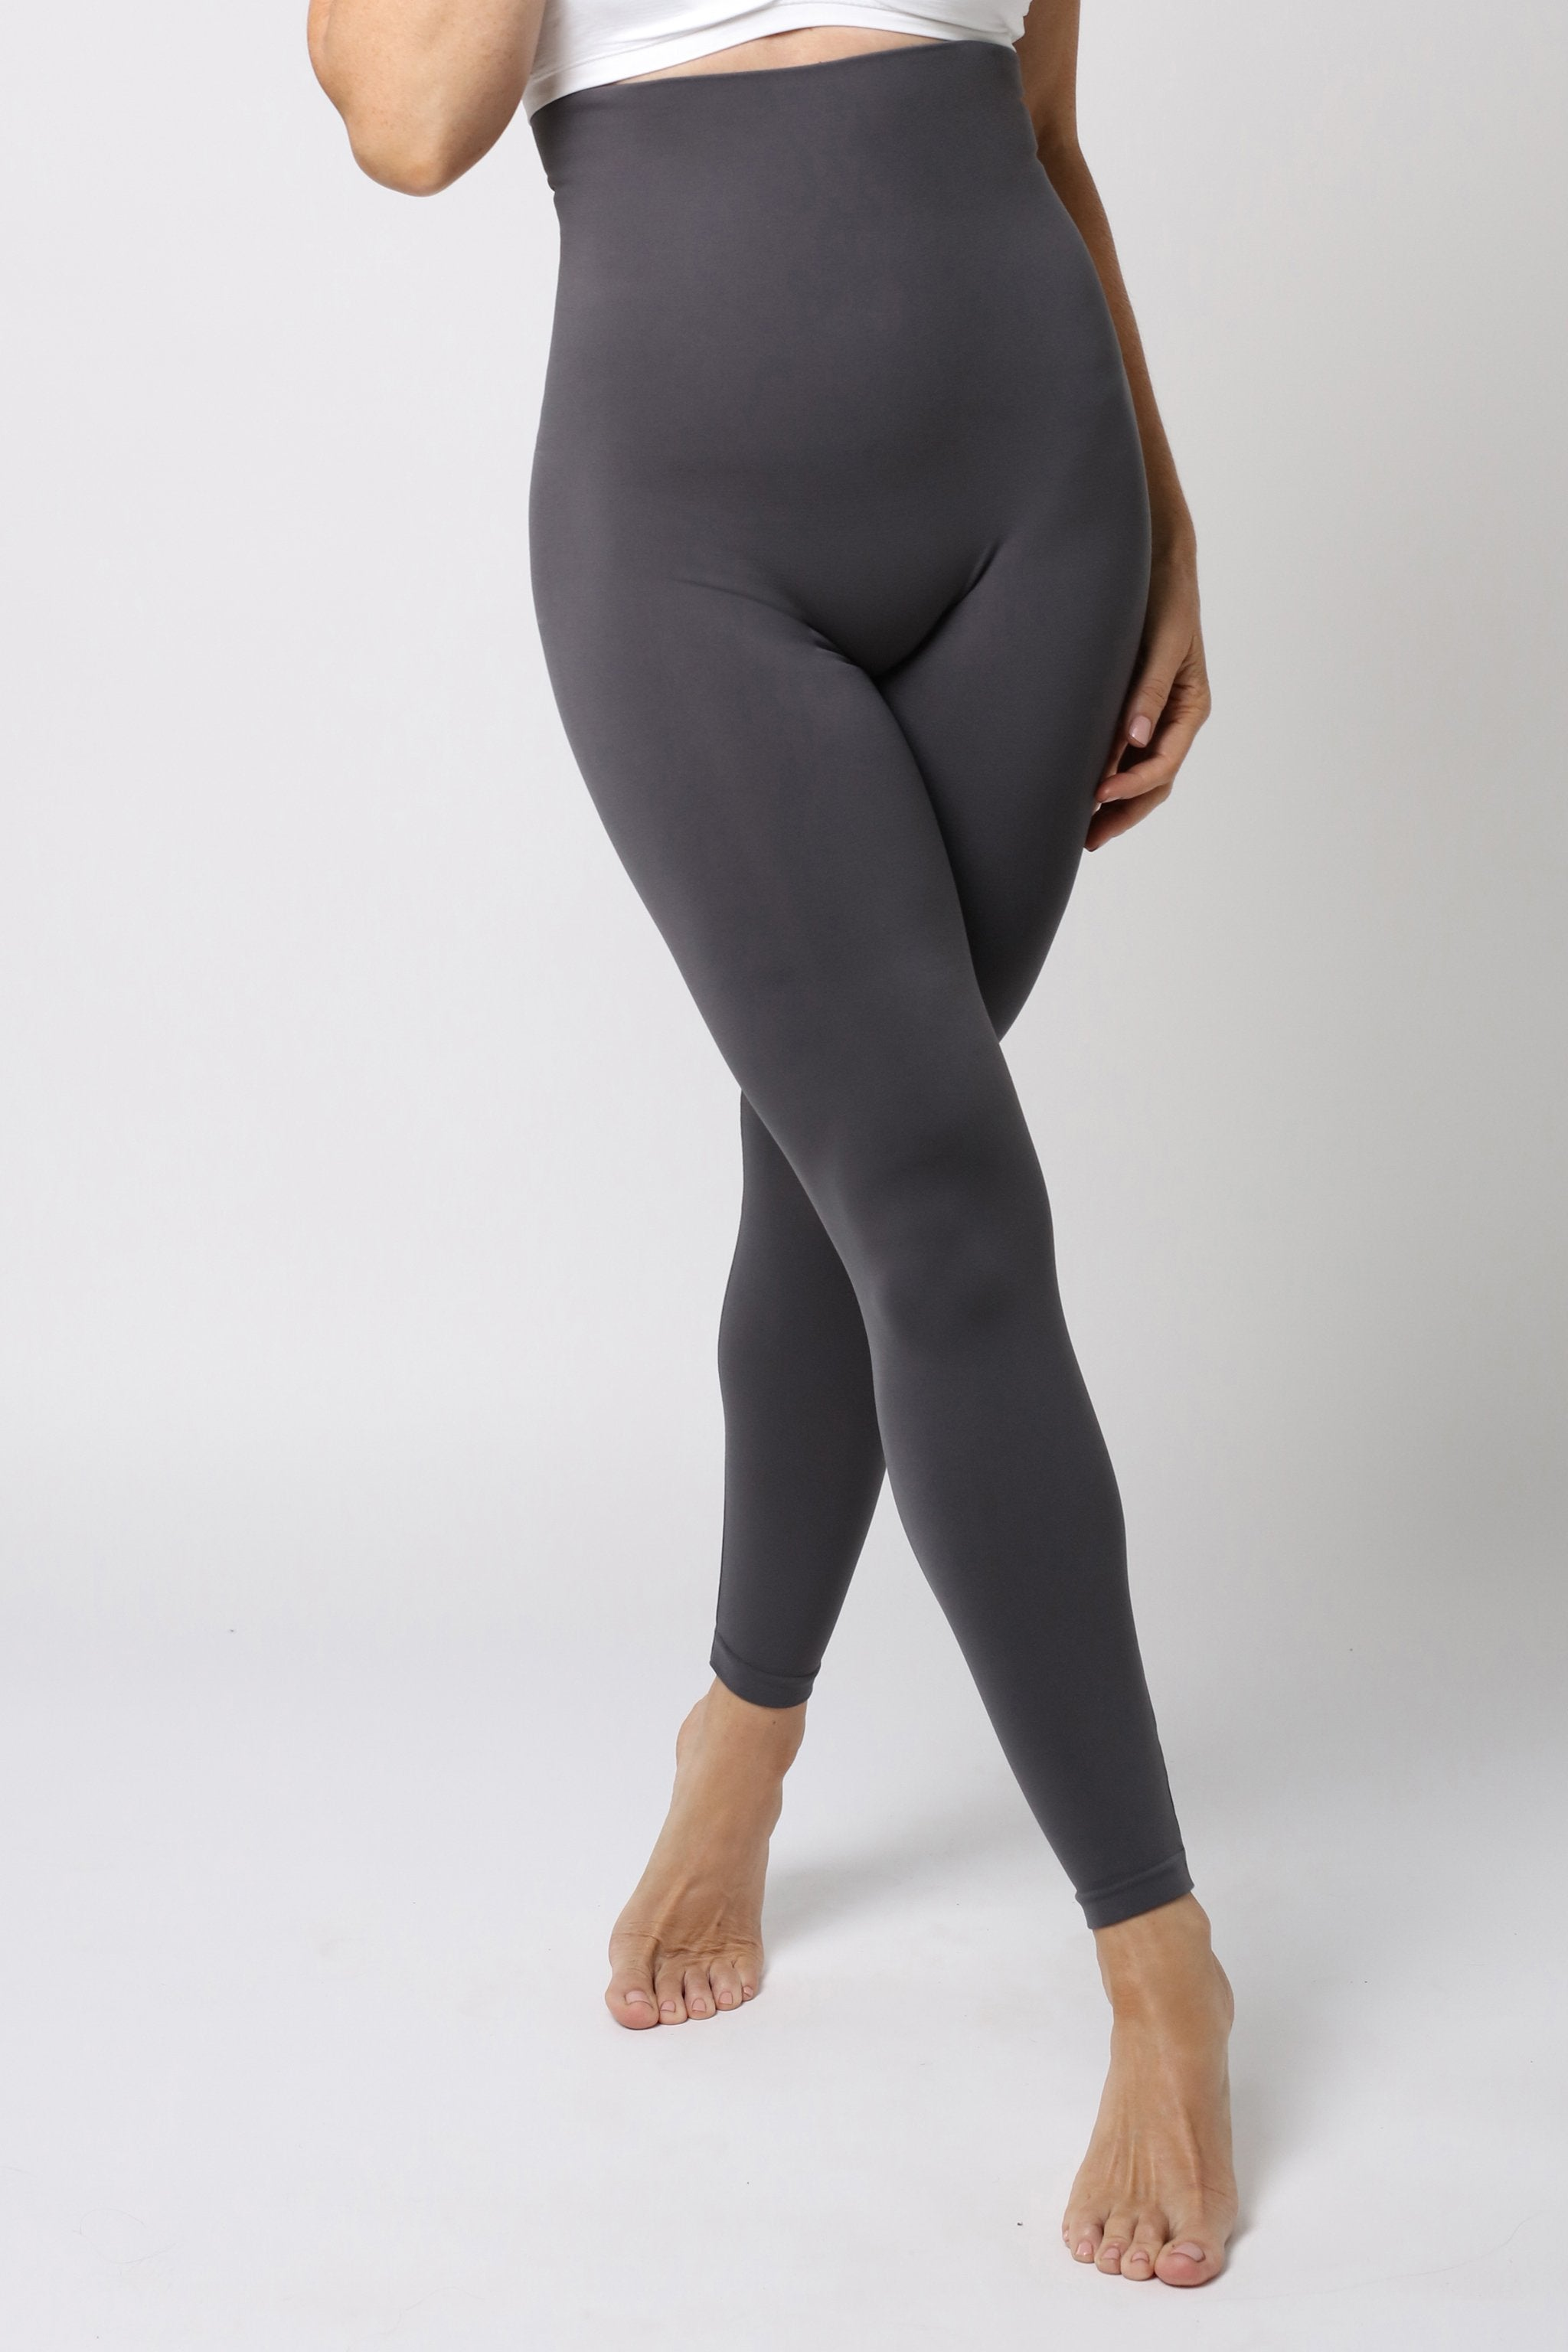 graue Legging - Anthrazit Grau